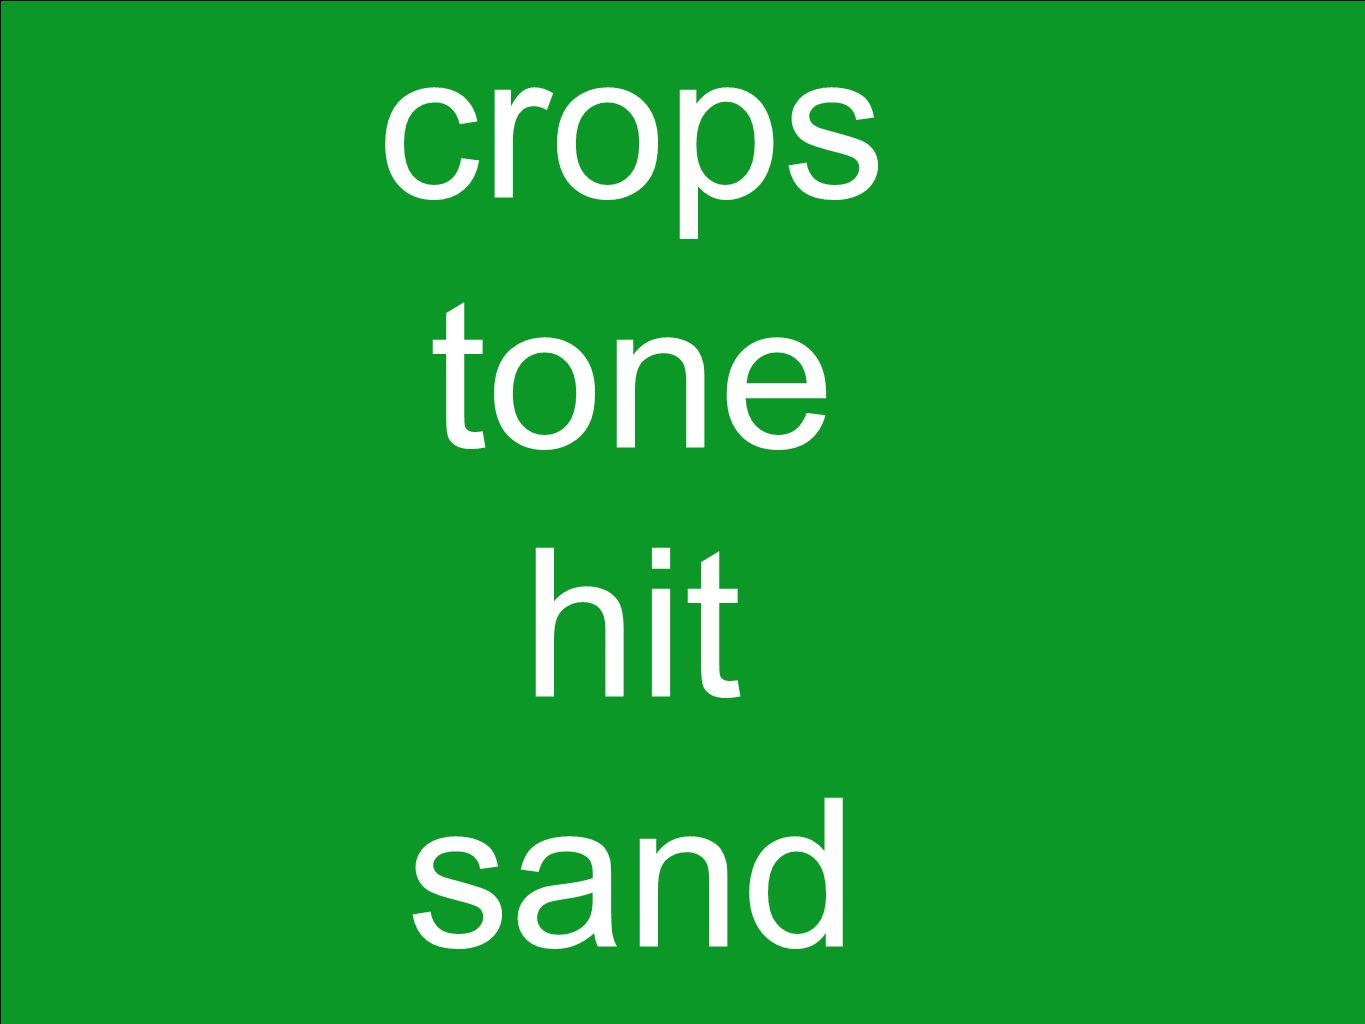 crops tone hit sand